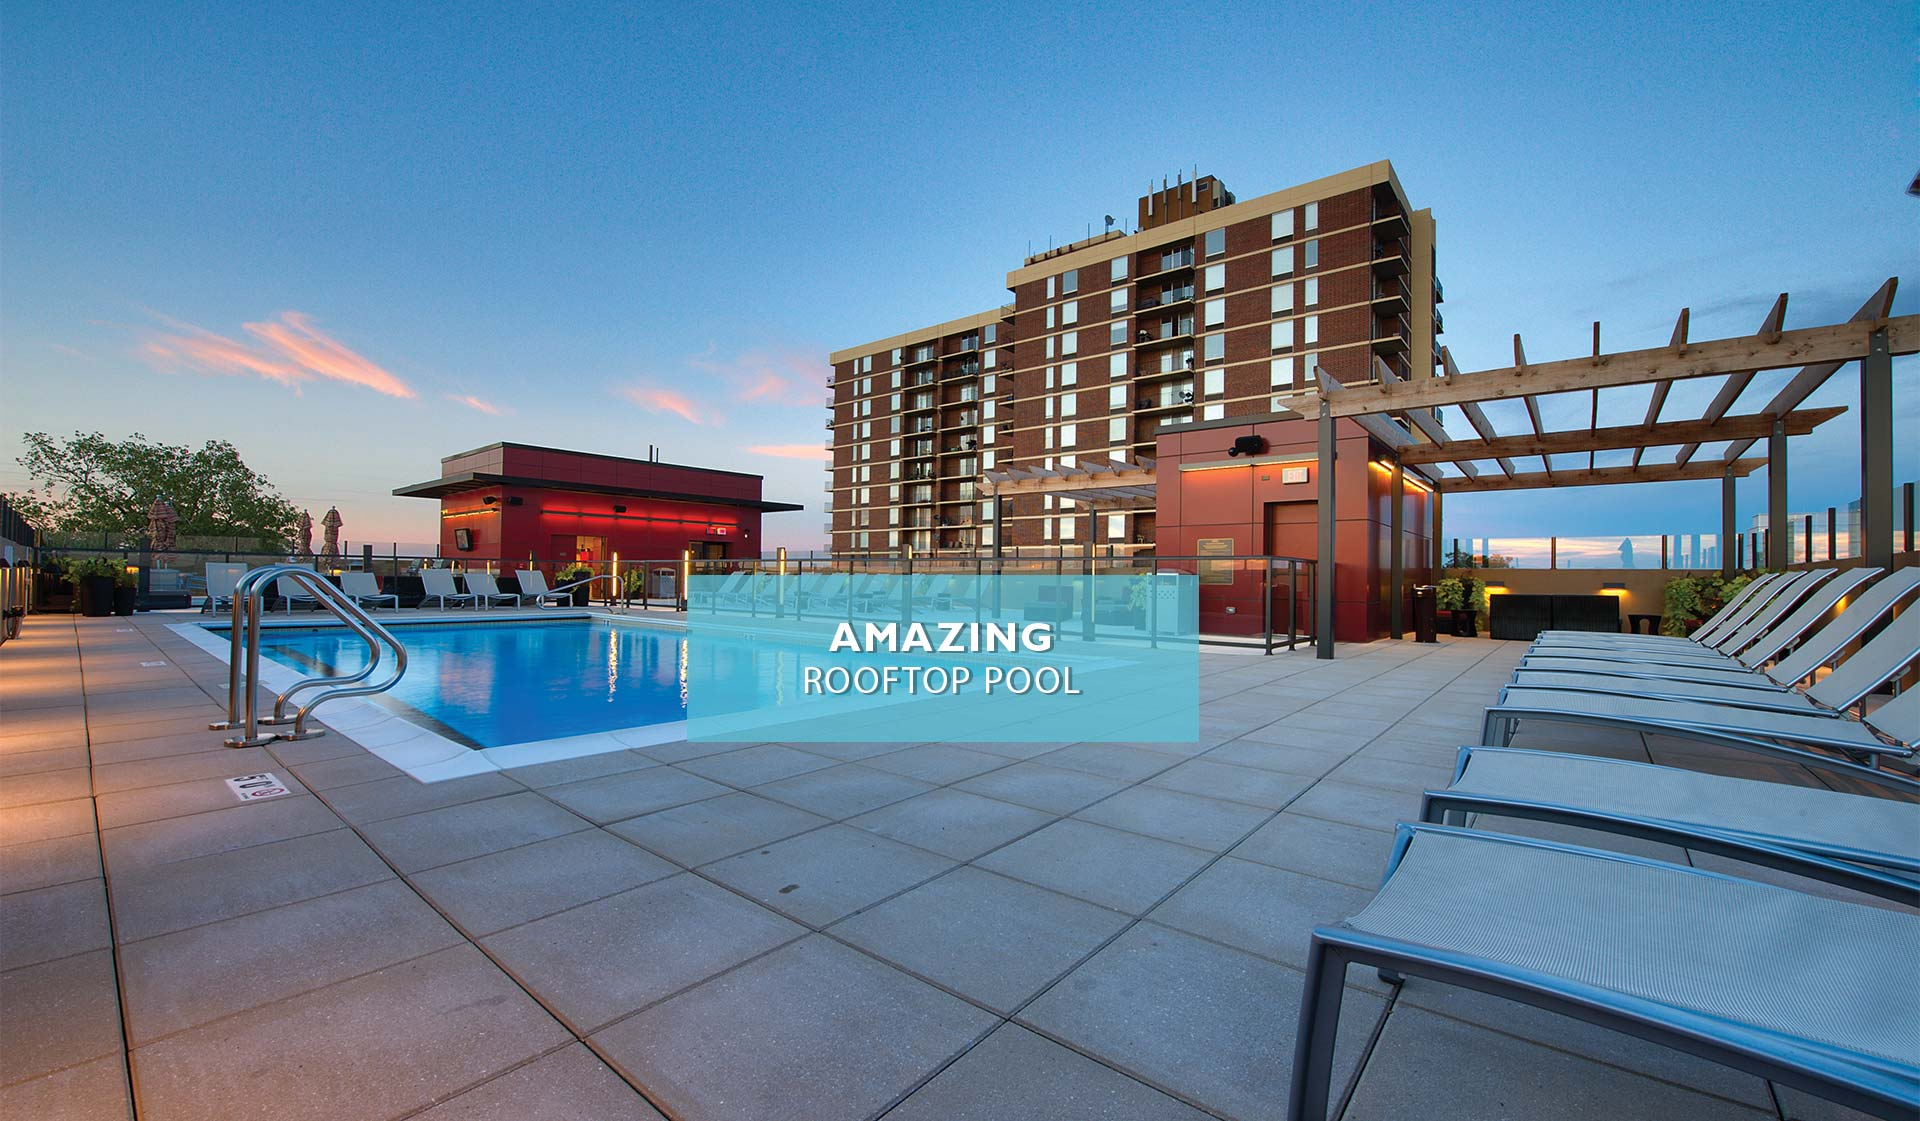 Yorktown Apartment homes - rooftop pool with high-rise building in background - Lombard, IL